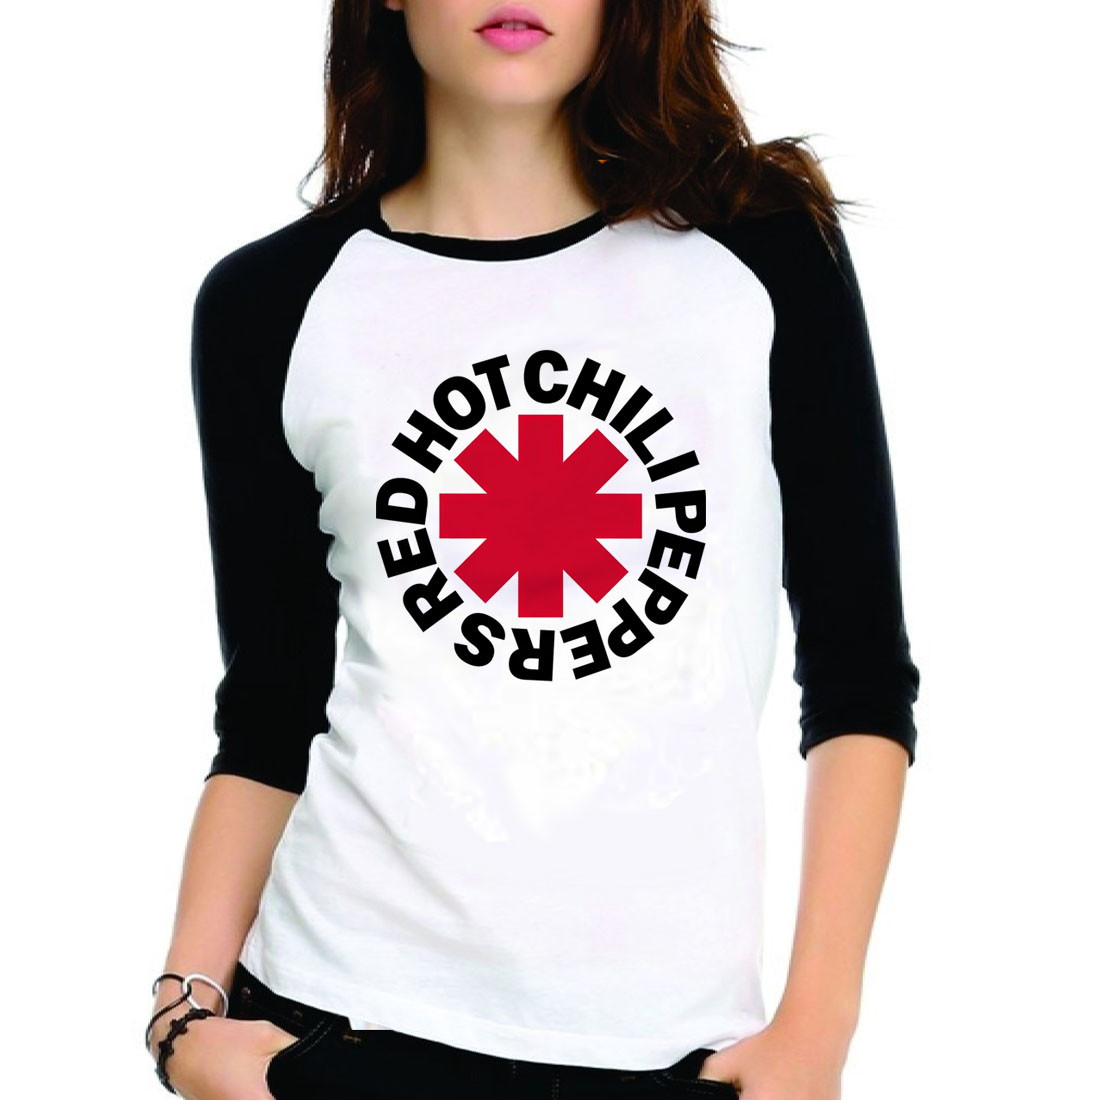 55cd902f31 Camiseta Red Hot Chili Peppers 3 4 no Elo7